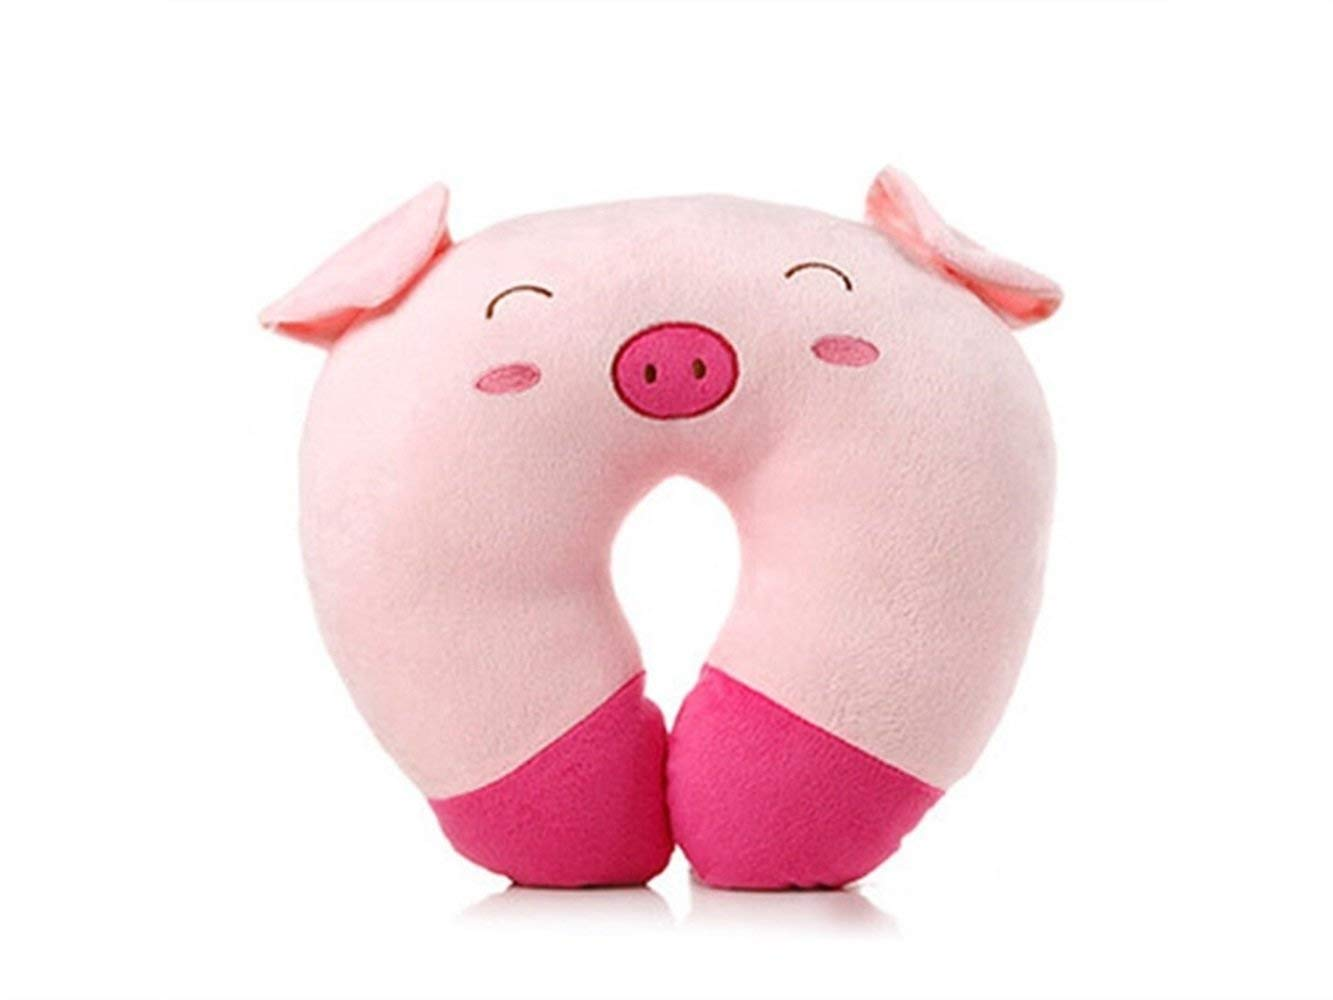 Yuchoi Perfectly Shaped Cartoon Animal U-shaped Neck Pillow Travel Car Airplane Seat Neck Rest for Home Office(Pink Pig)